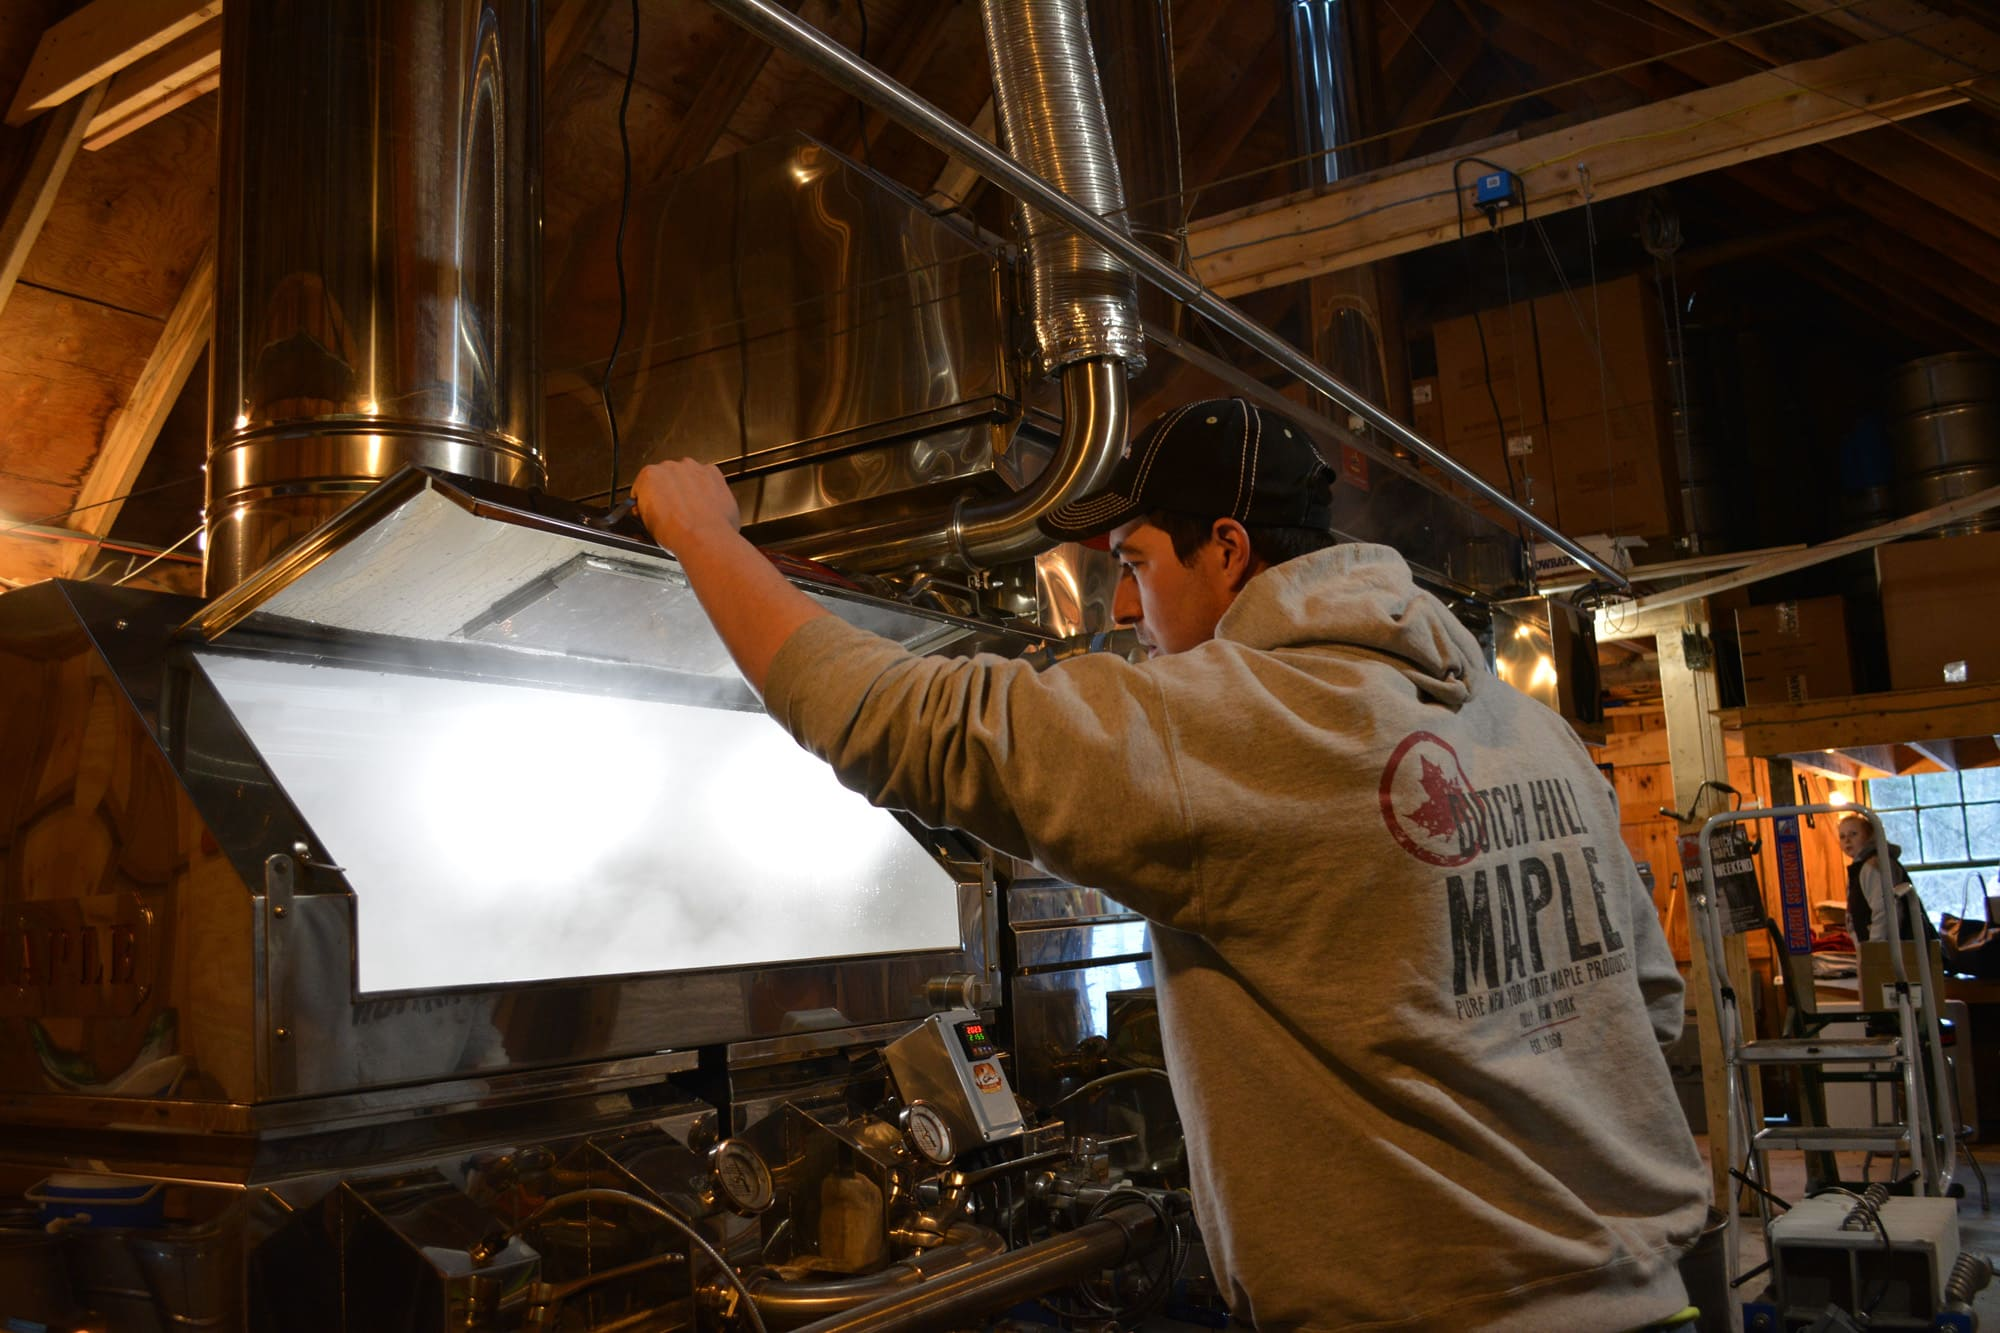 As the sap moves through the evaporator, Nate Williams of Dutch Hill opens the window to check the boiling sap for foam, which is caused by minerals and bacteria. If foam appears, Williams adds a defoaming agent to the machine.